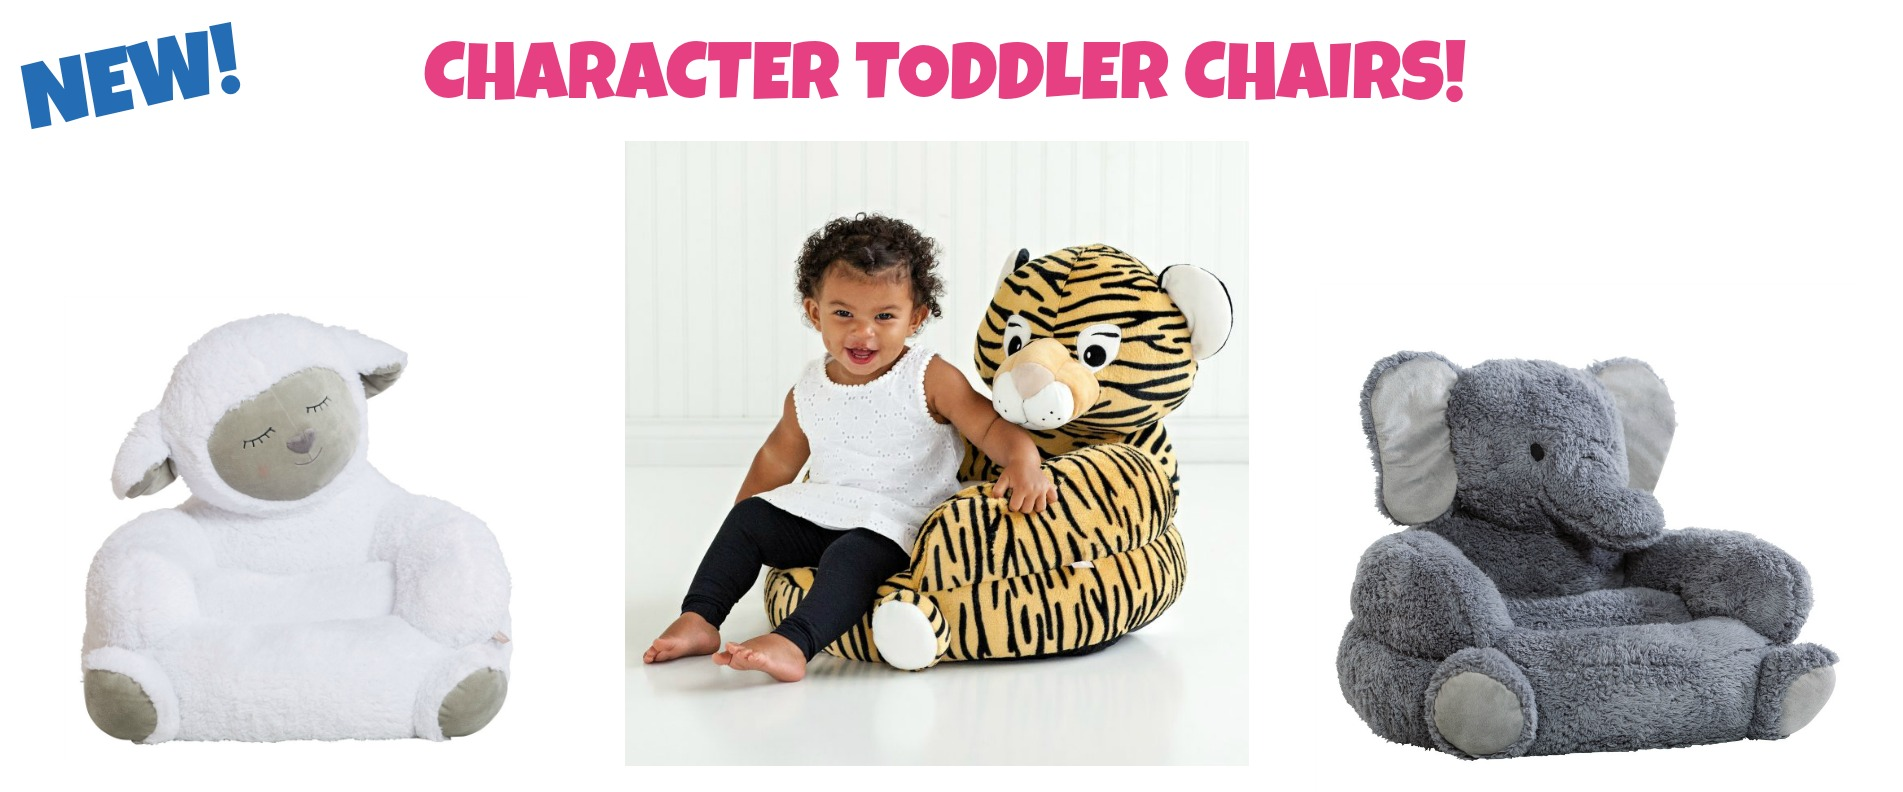 animal-chairs-for-toddlers.jpg